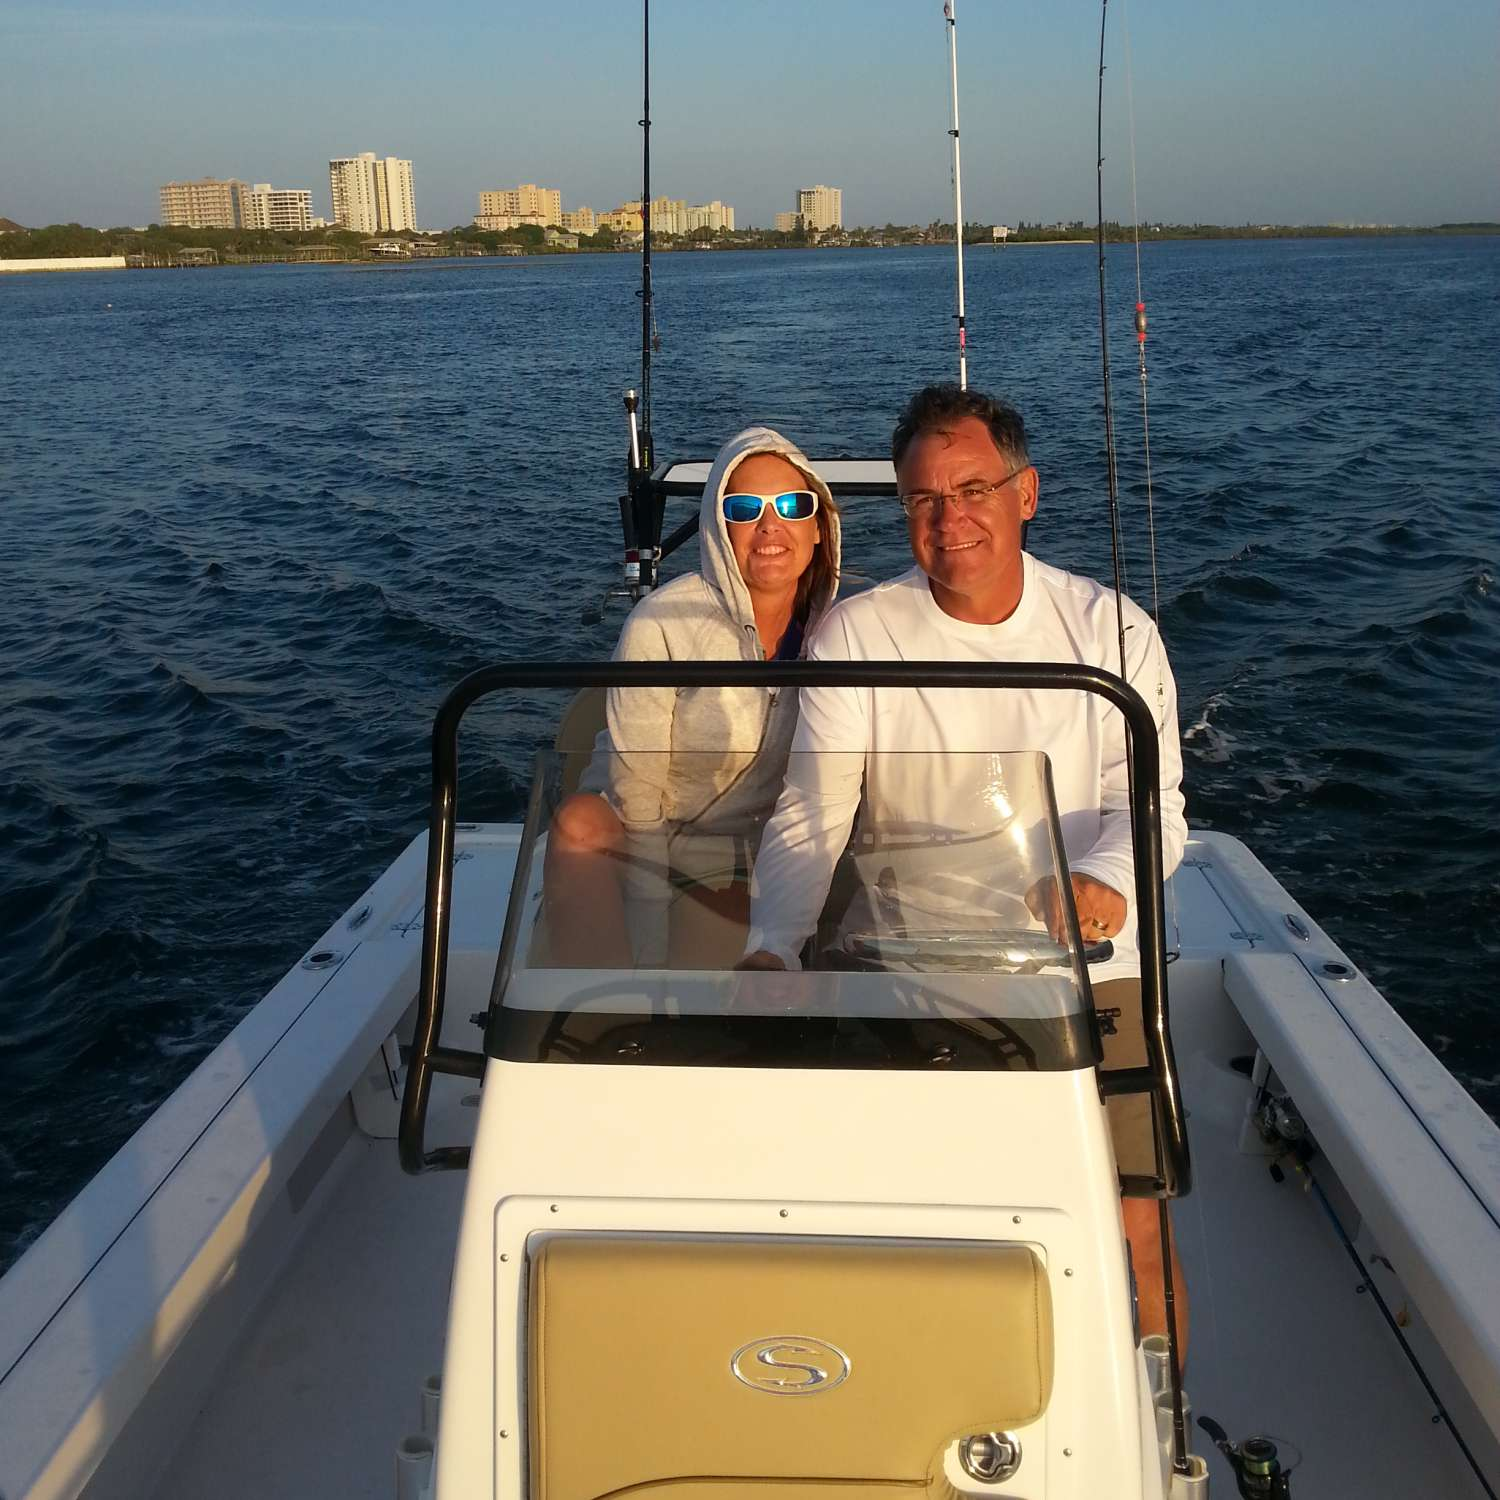 Title: Enjoying Our Day - On board their Sportsman Tournament 214 Bay Boat - Location: Port Orange, Florida. Participating in the Photo Contest #SportsmanMarch2016